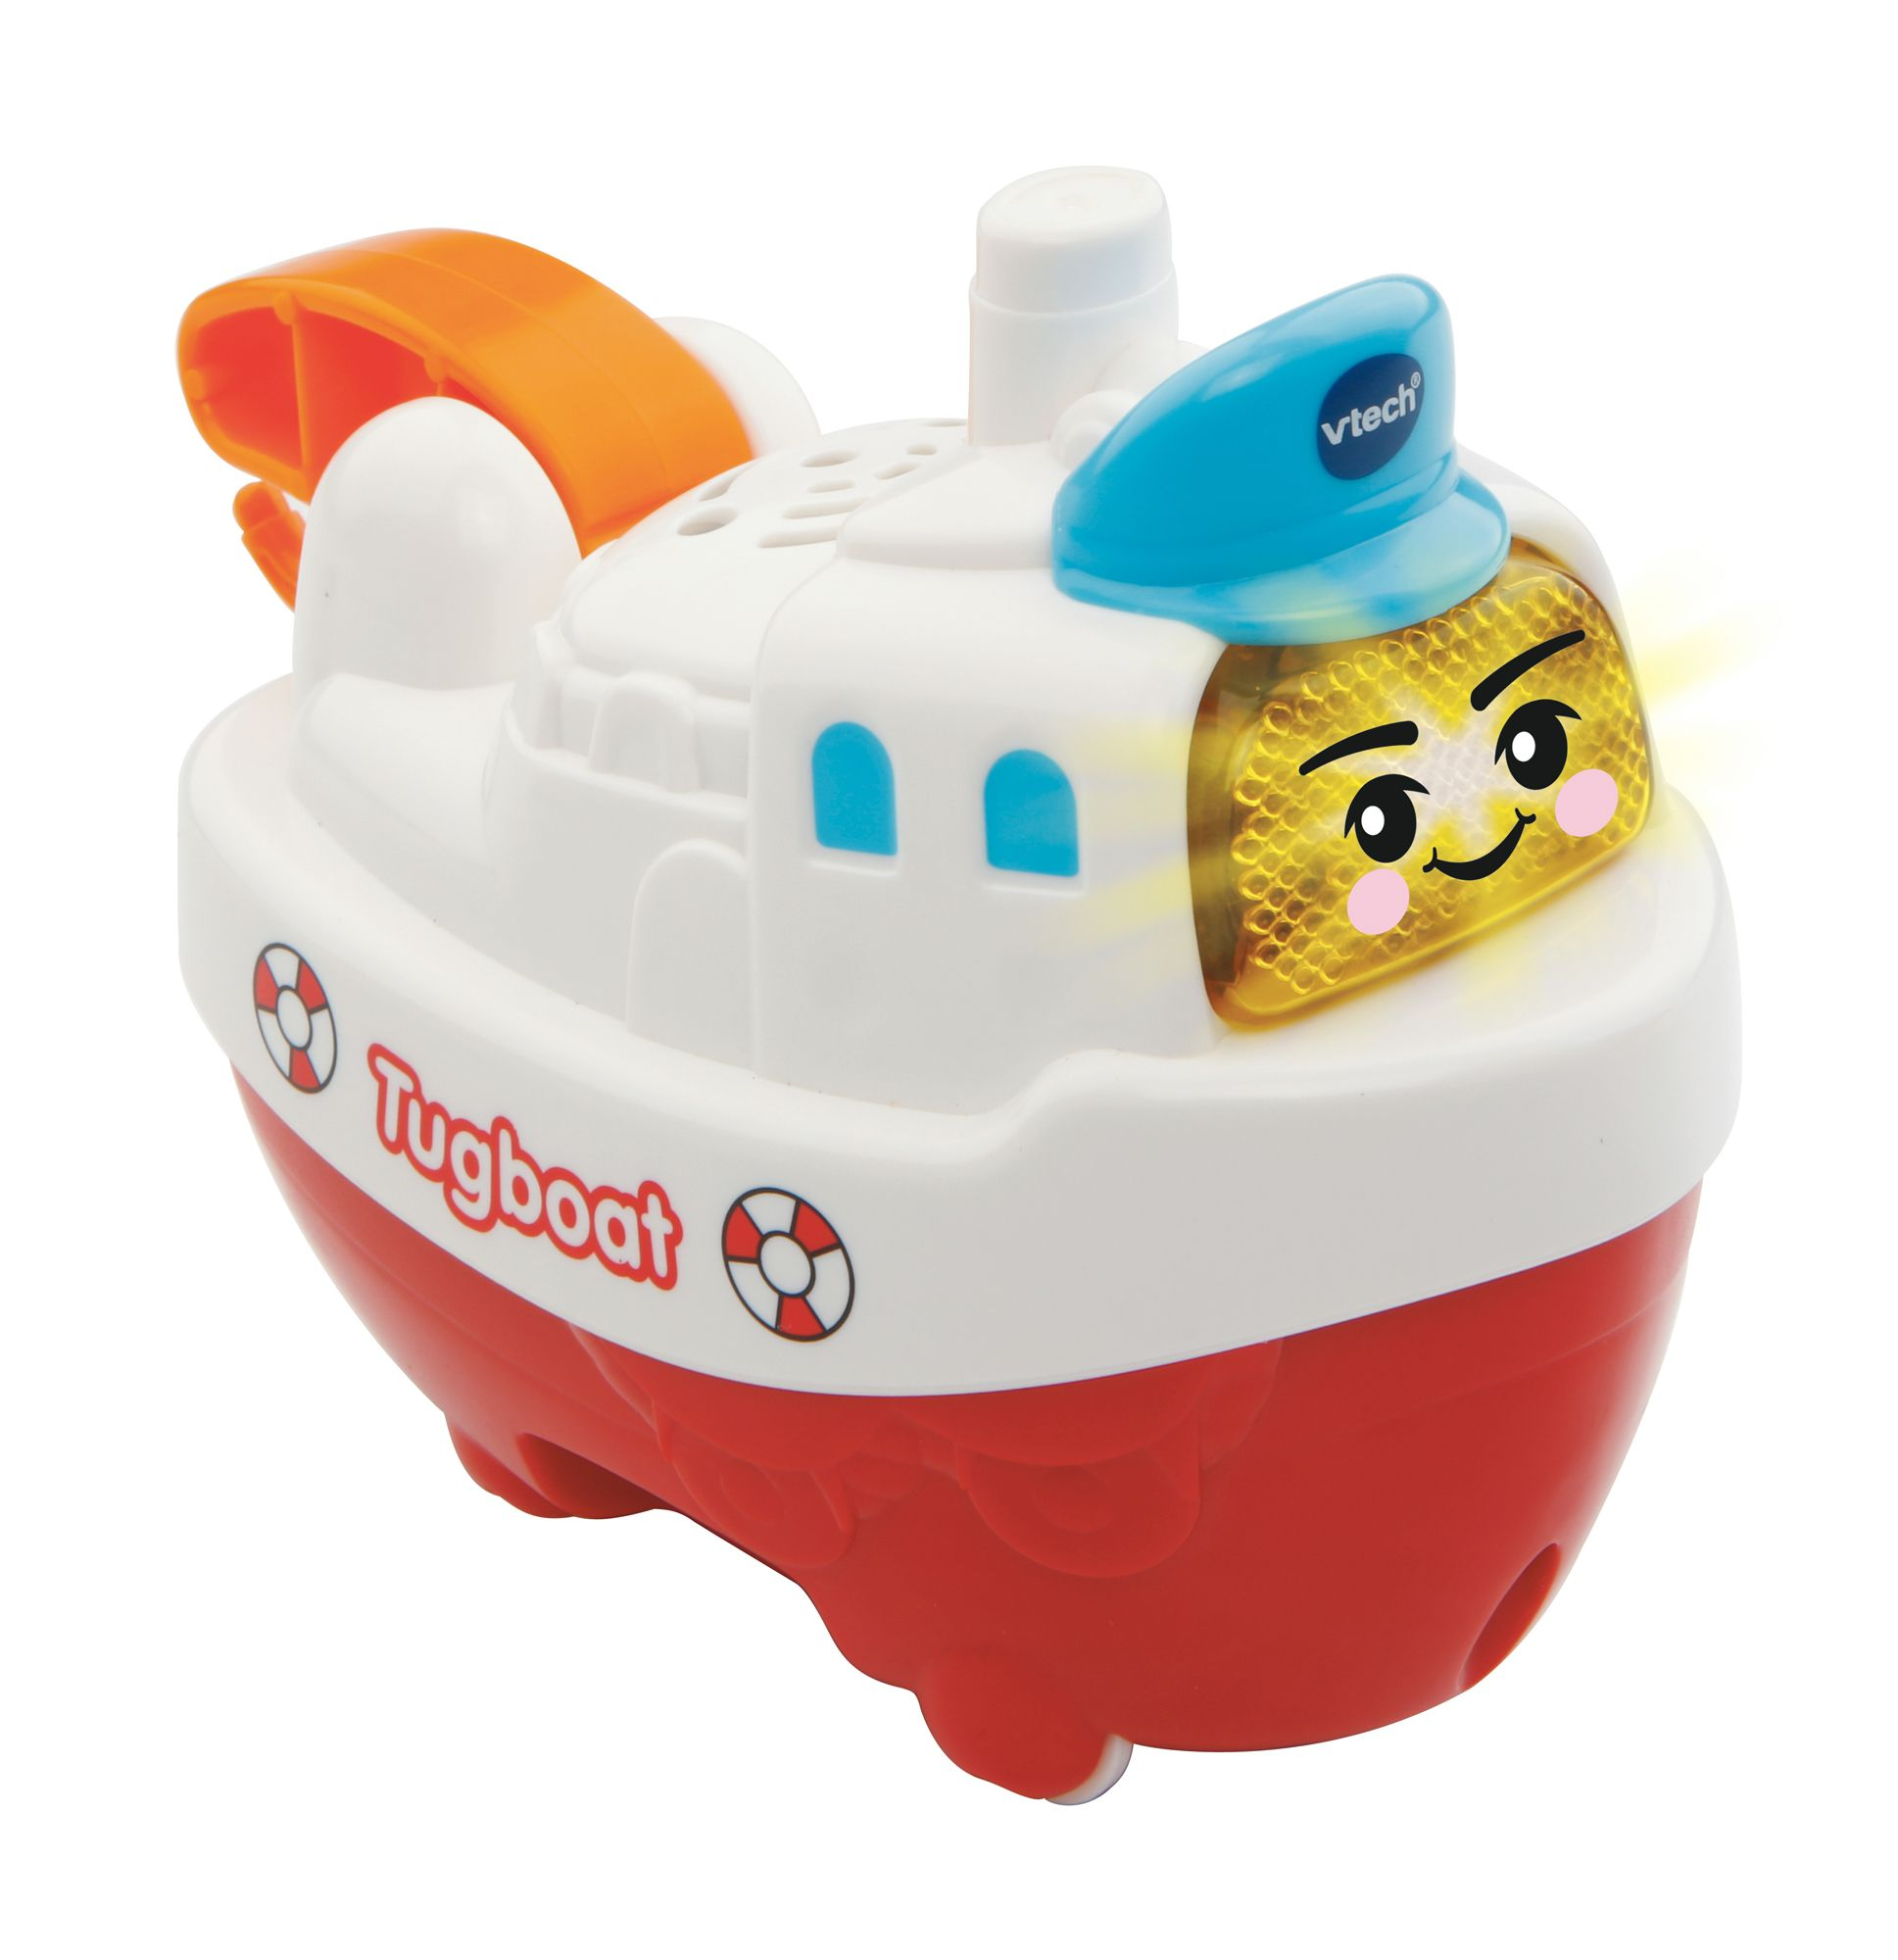 Vtech TootToot Splash  Tug Boat